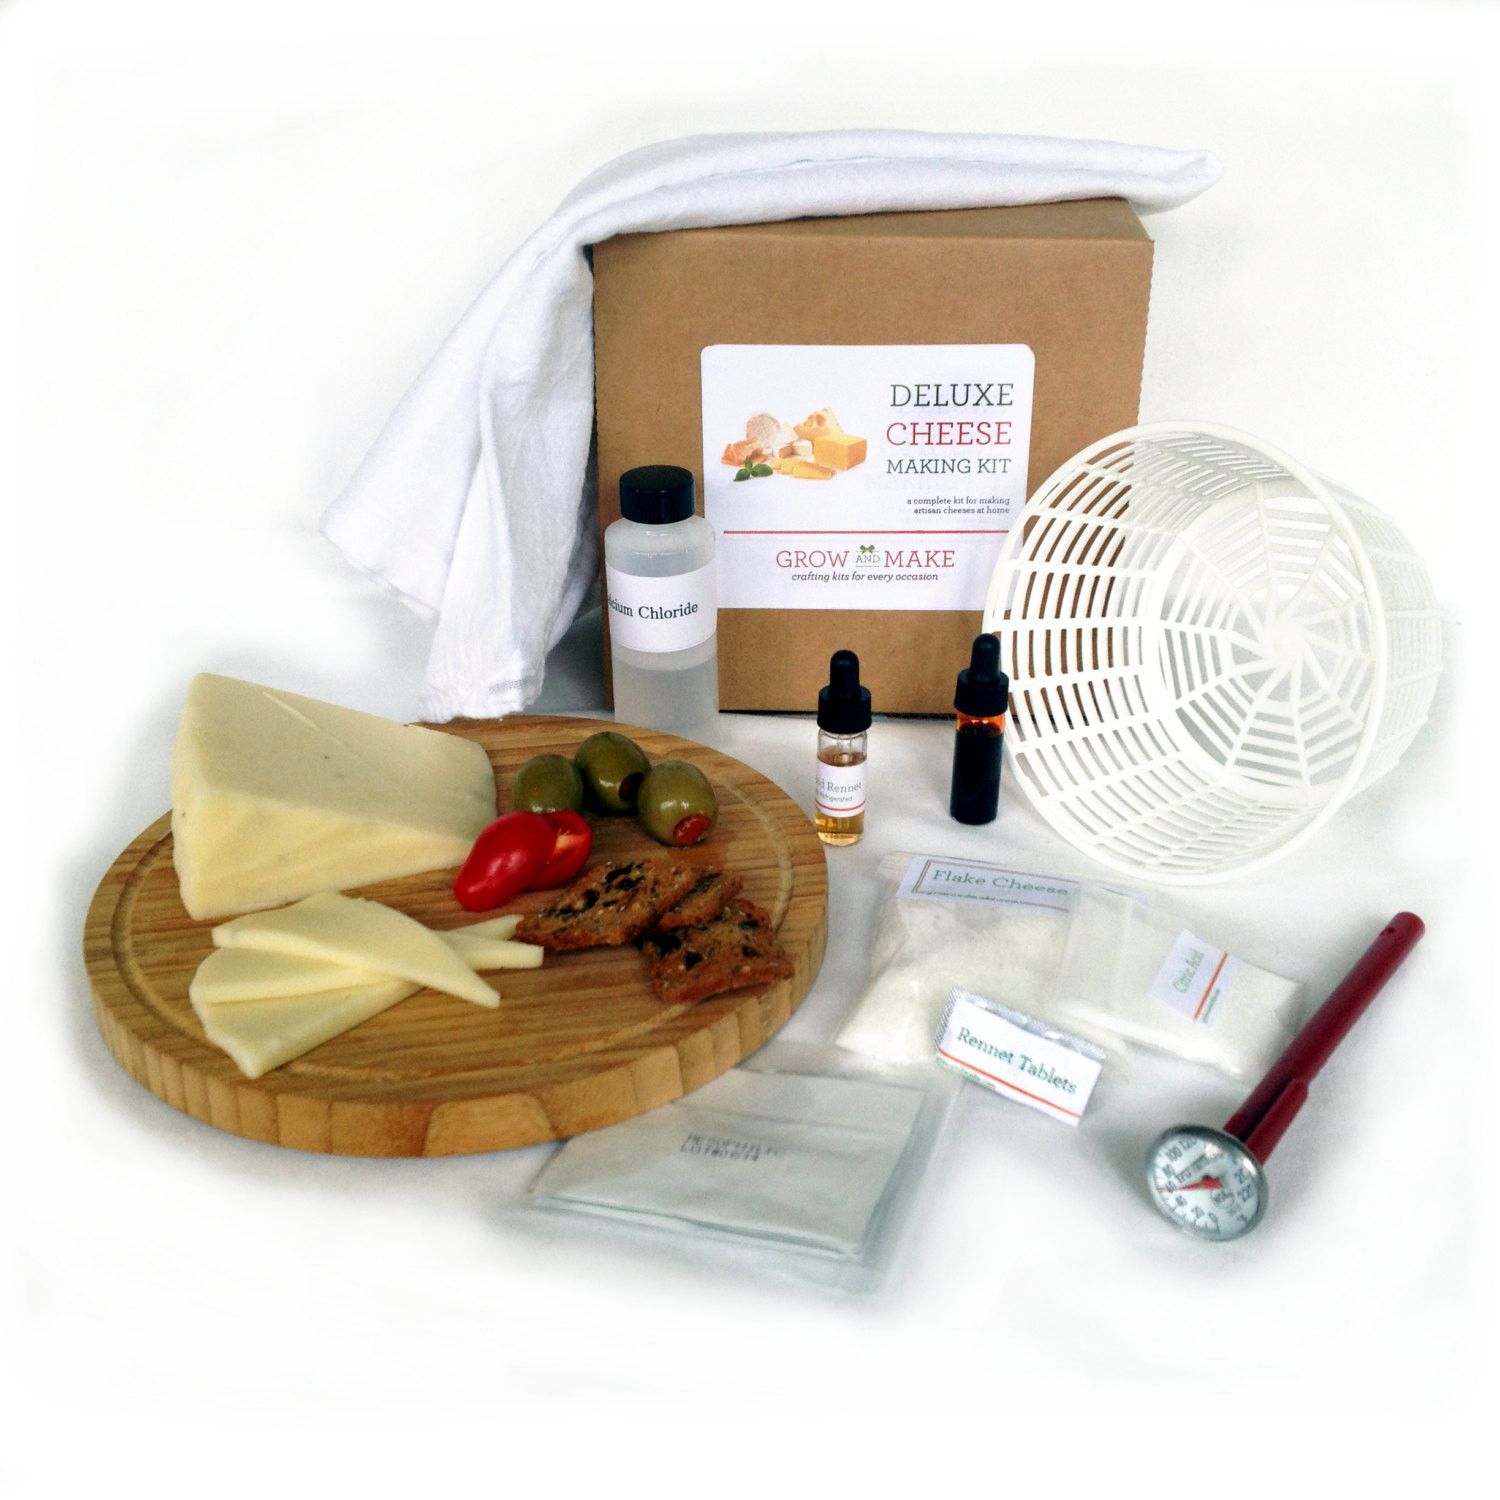 Best ideas about DIY Cheese Kit . Save or Pin DIY Deluxe Cheese Kit Now.